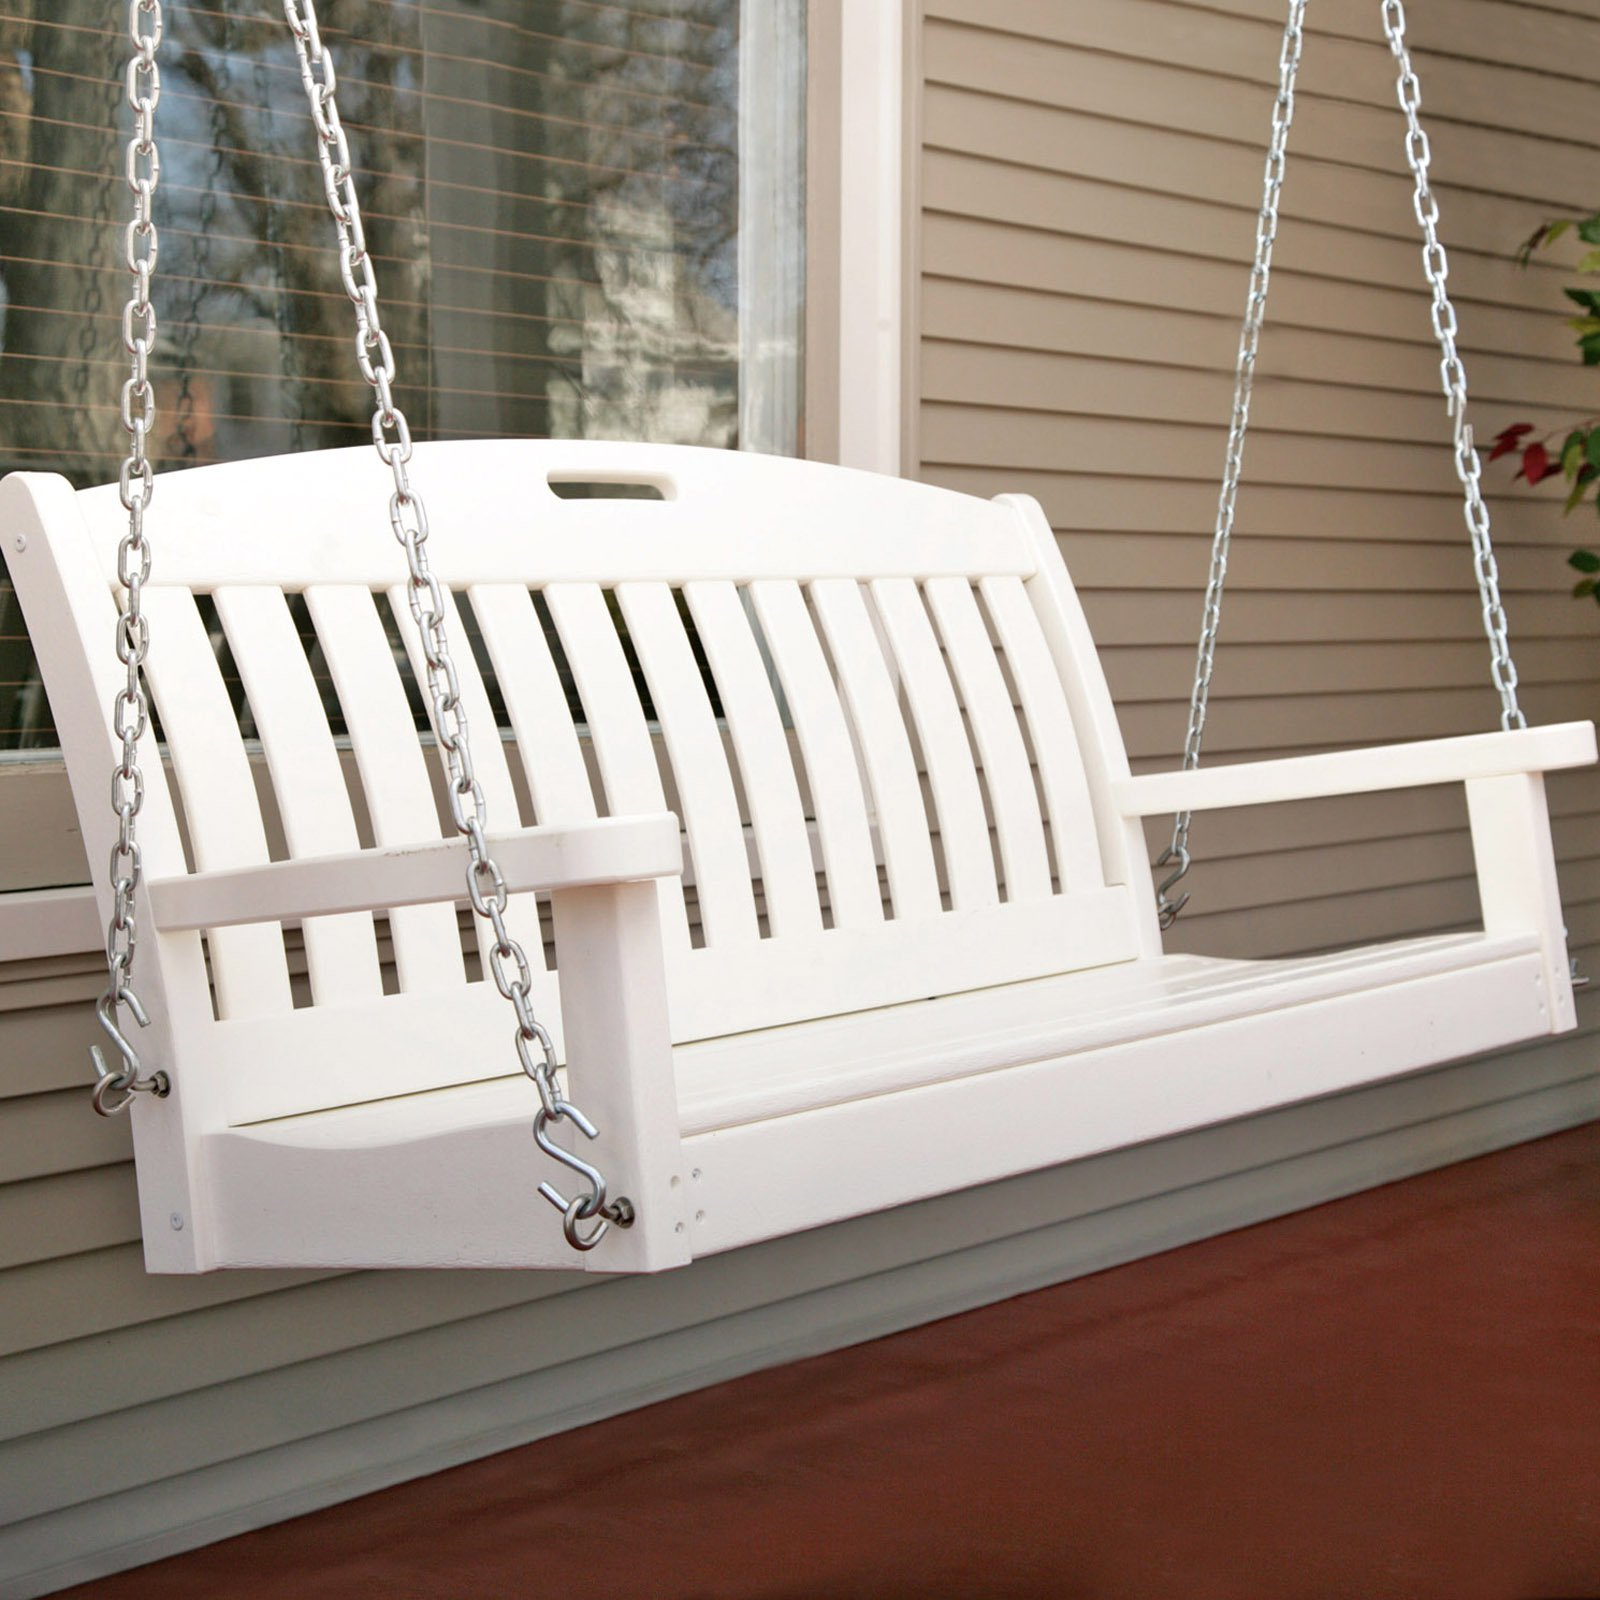 Recycled plastic porch swing white walmart com